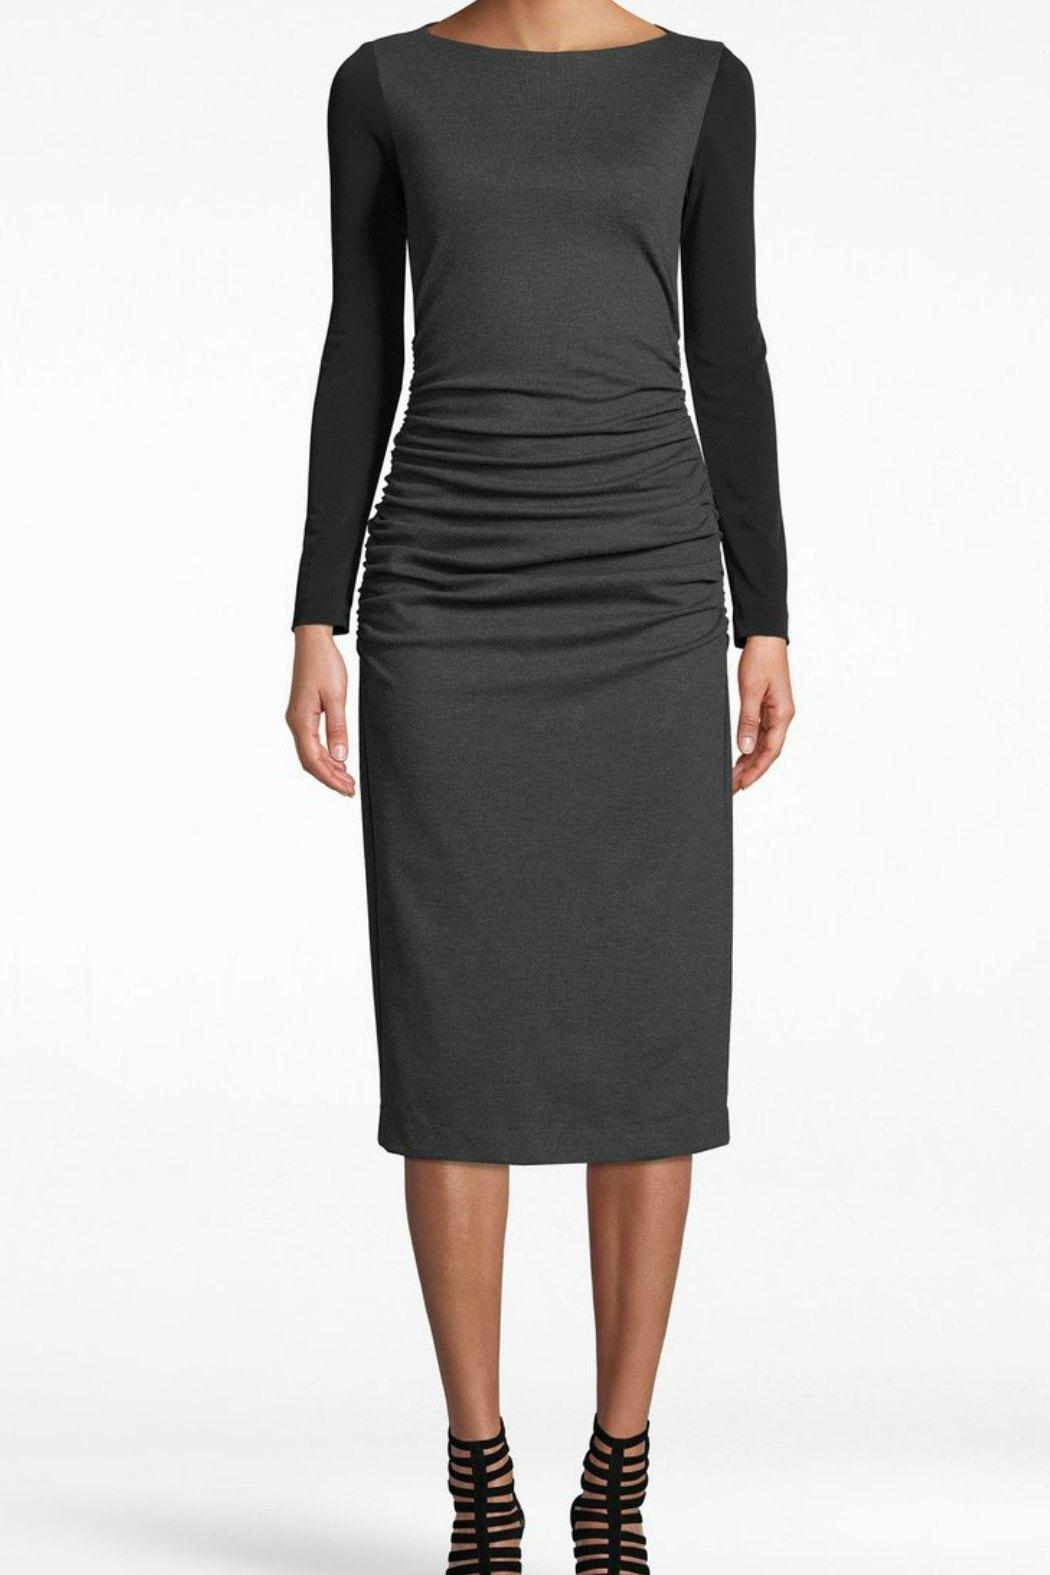 Nicole Miller Ponte Ruched Dress - Main Image